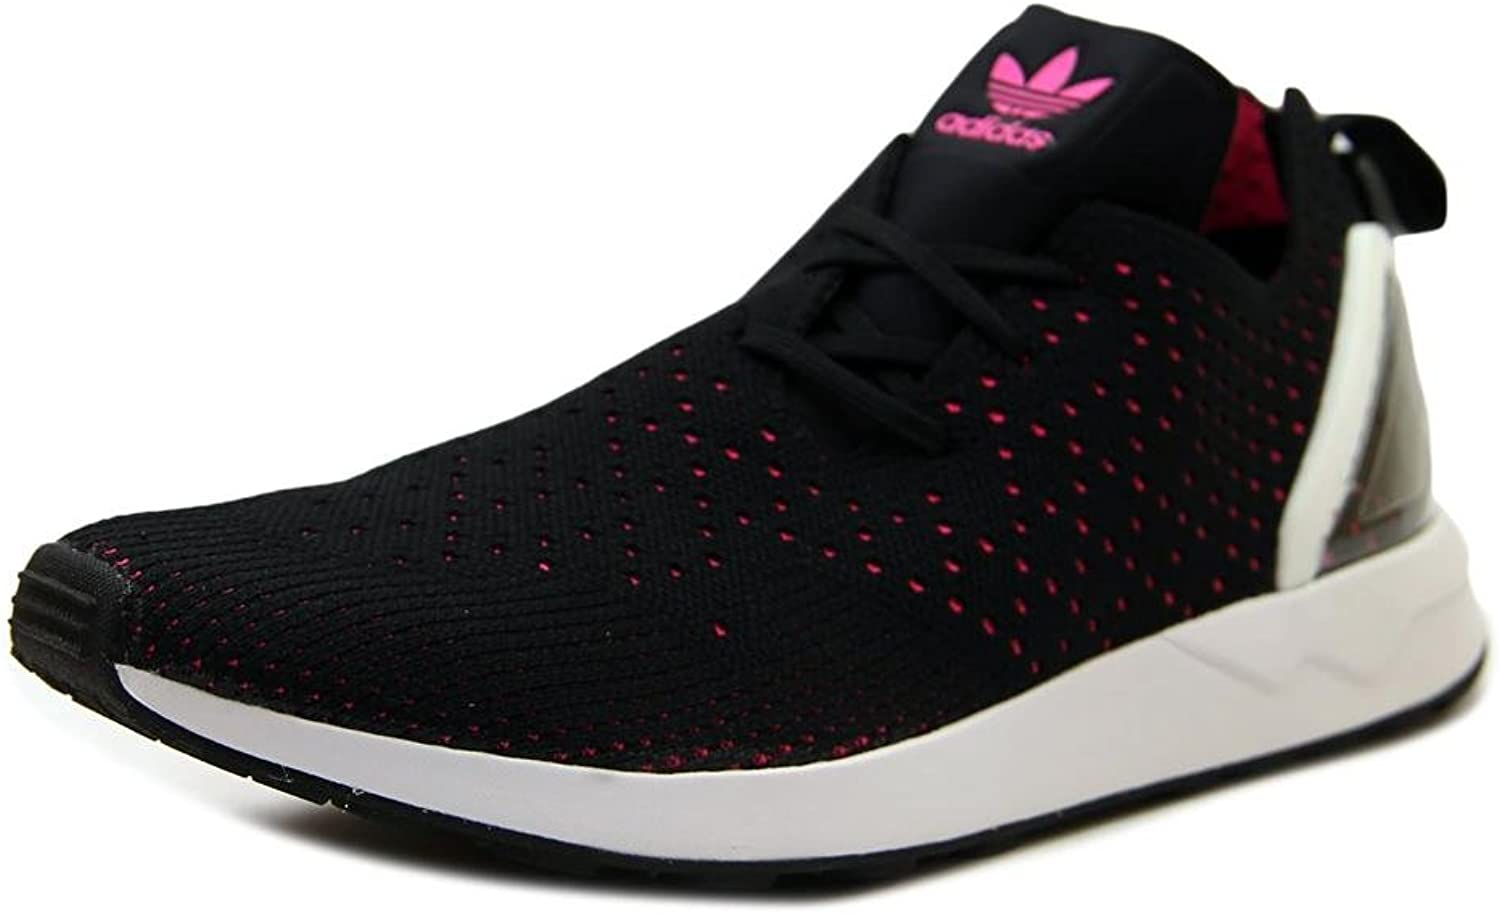 Adidas Zx Flux Adv Asym Pk Mens Style  S79063-Blk Pink Wht Size  12